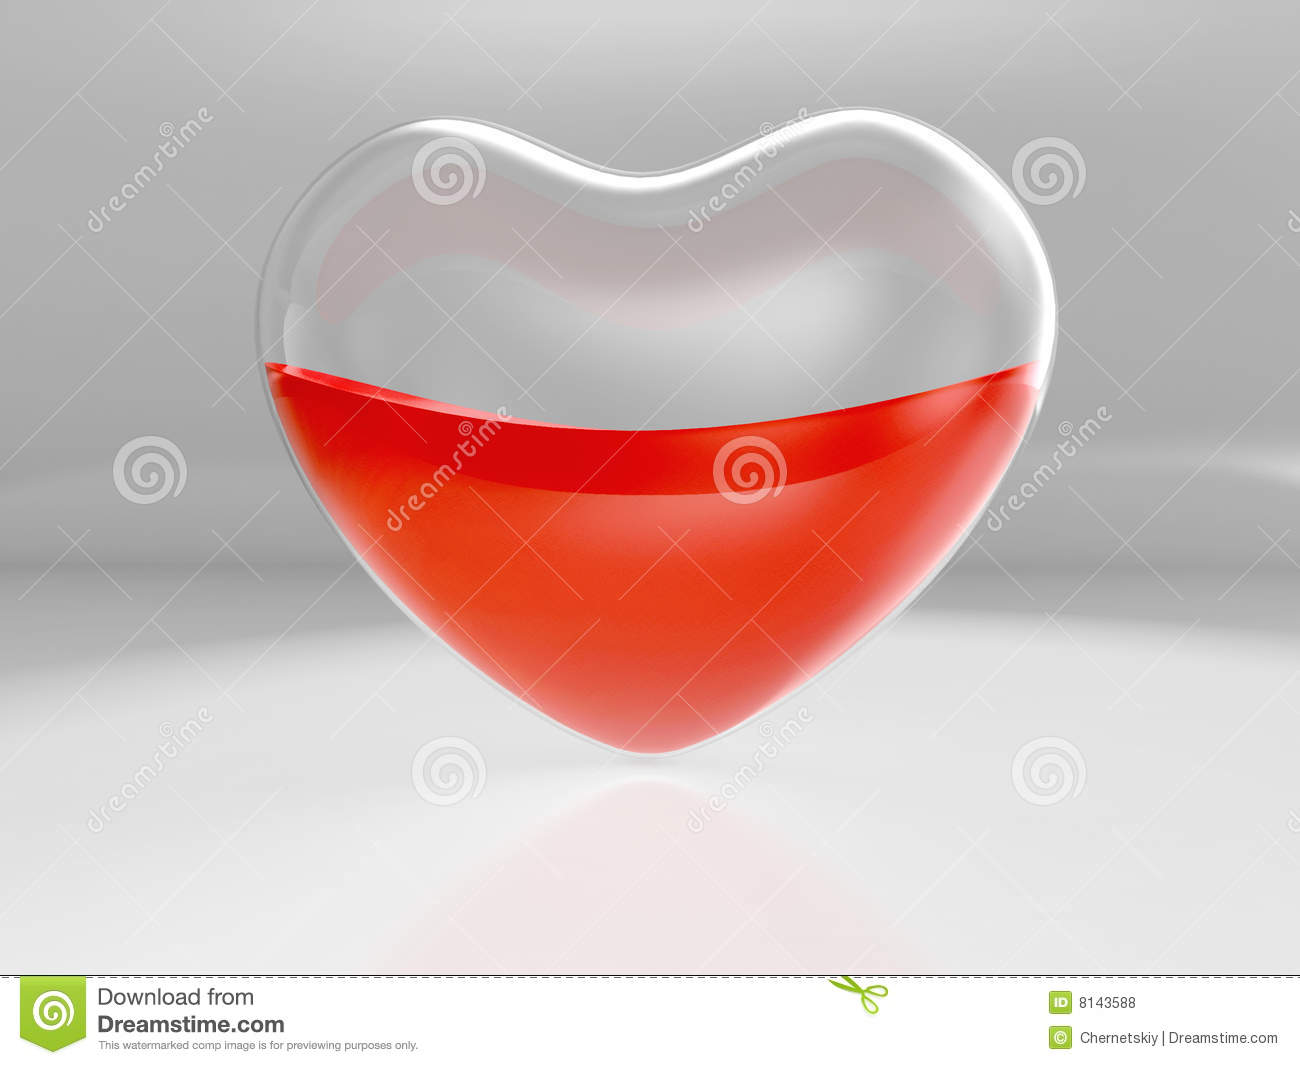 Half Heart Stock Illustrations 4 233 Half Heart Stock Illustrations Vectors Clipart Dreamstime